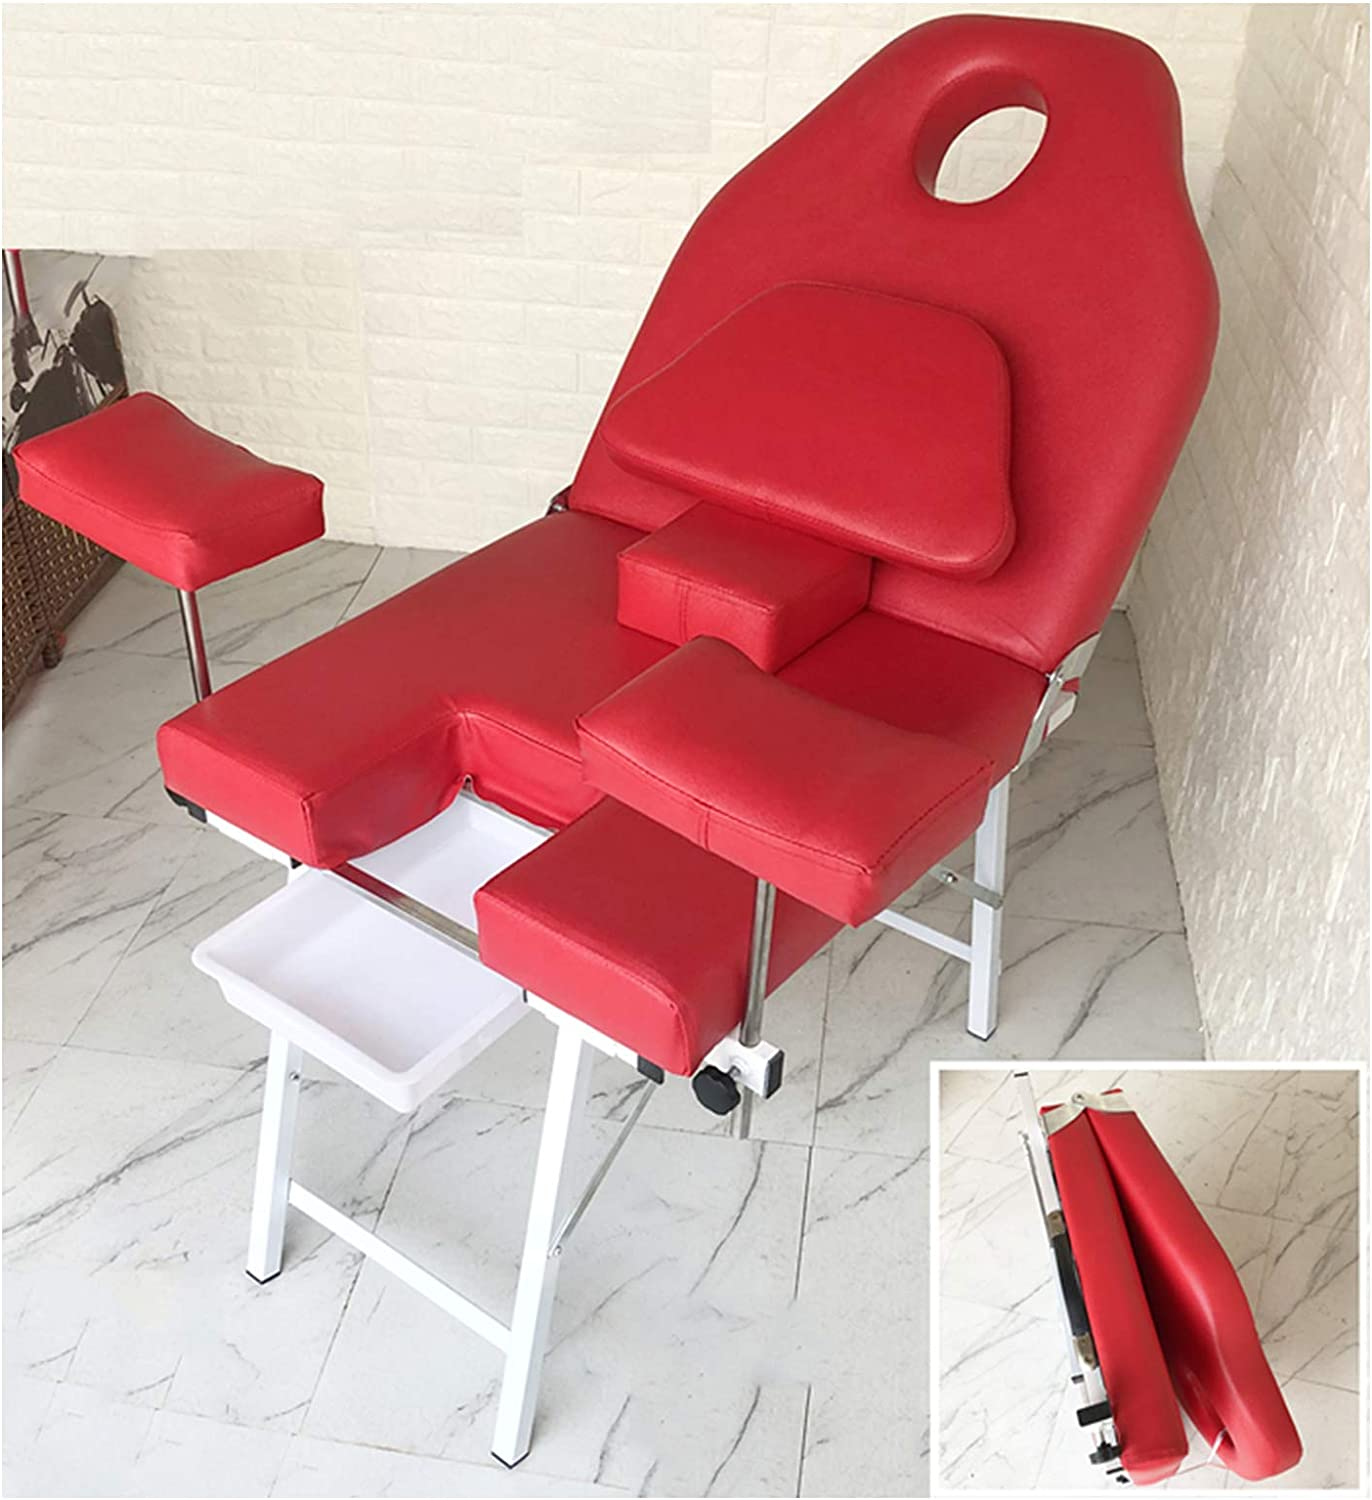 QMMD GYN Examination Table Portable Folding Gynecology Operating Bed, Light Weight 17KG,Outpatient Medical OB GYN Nursing Chair, Gynecological Surgery delivery Table,702560